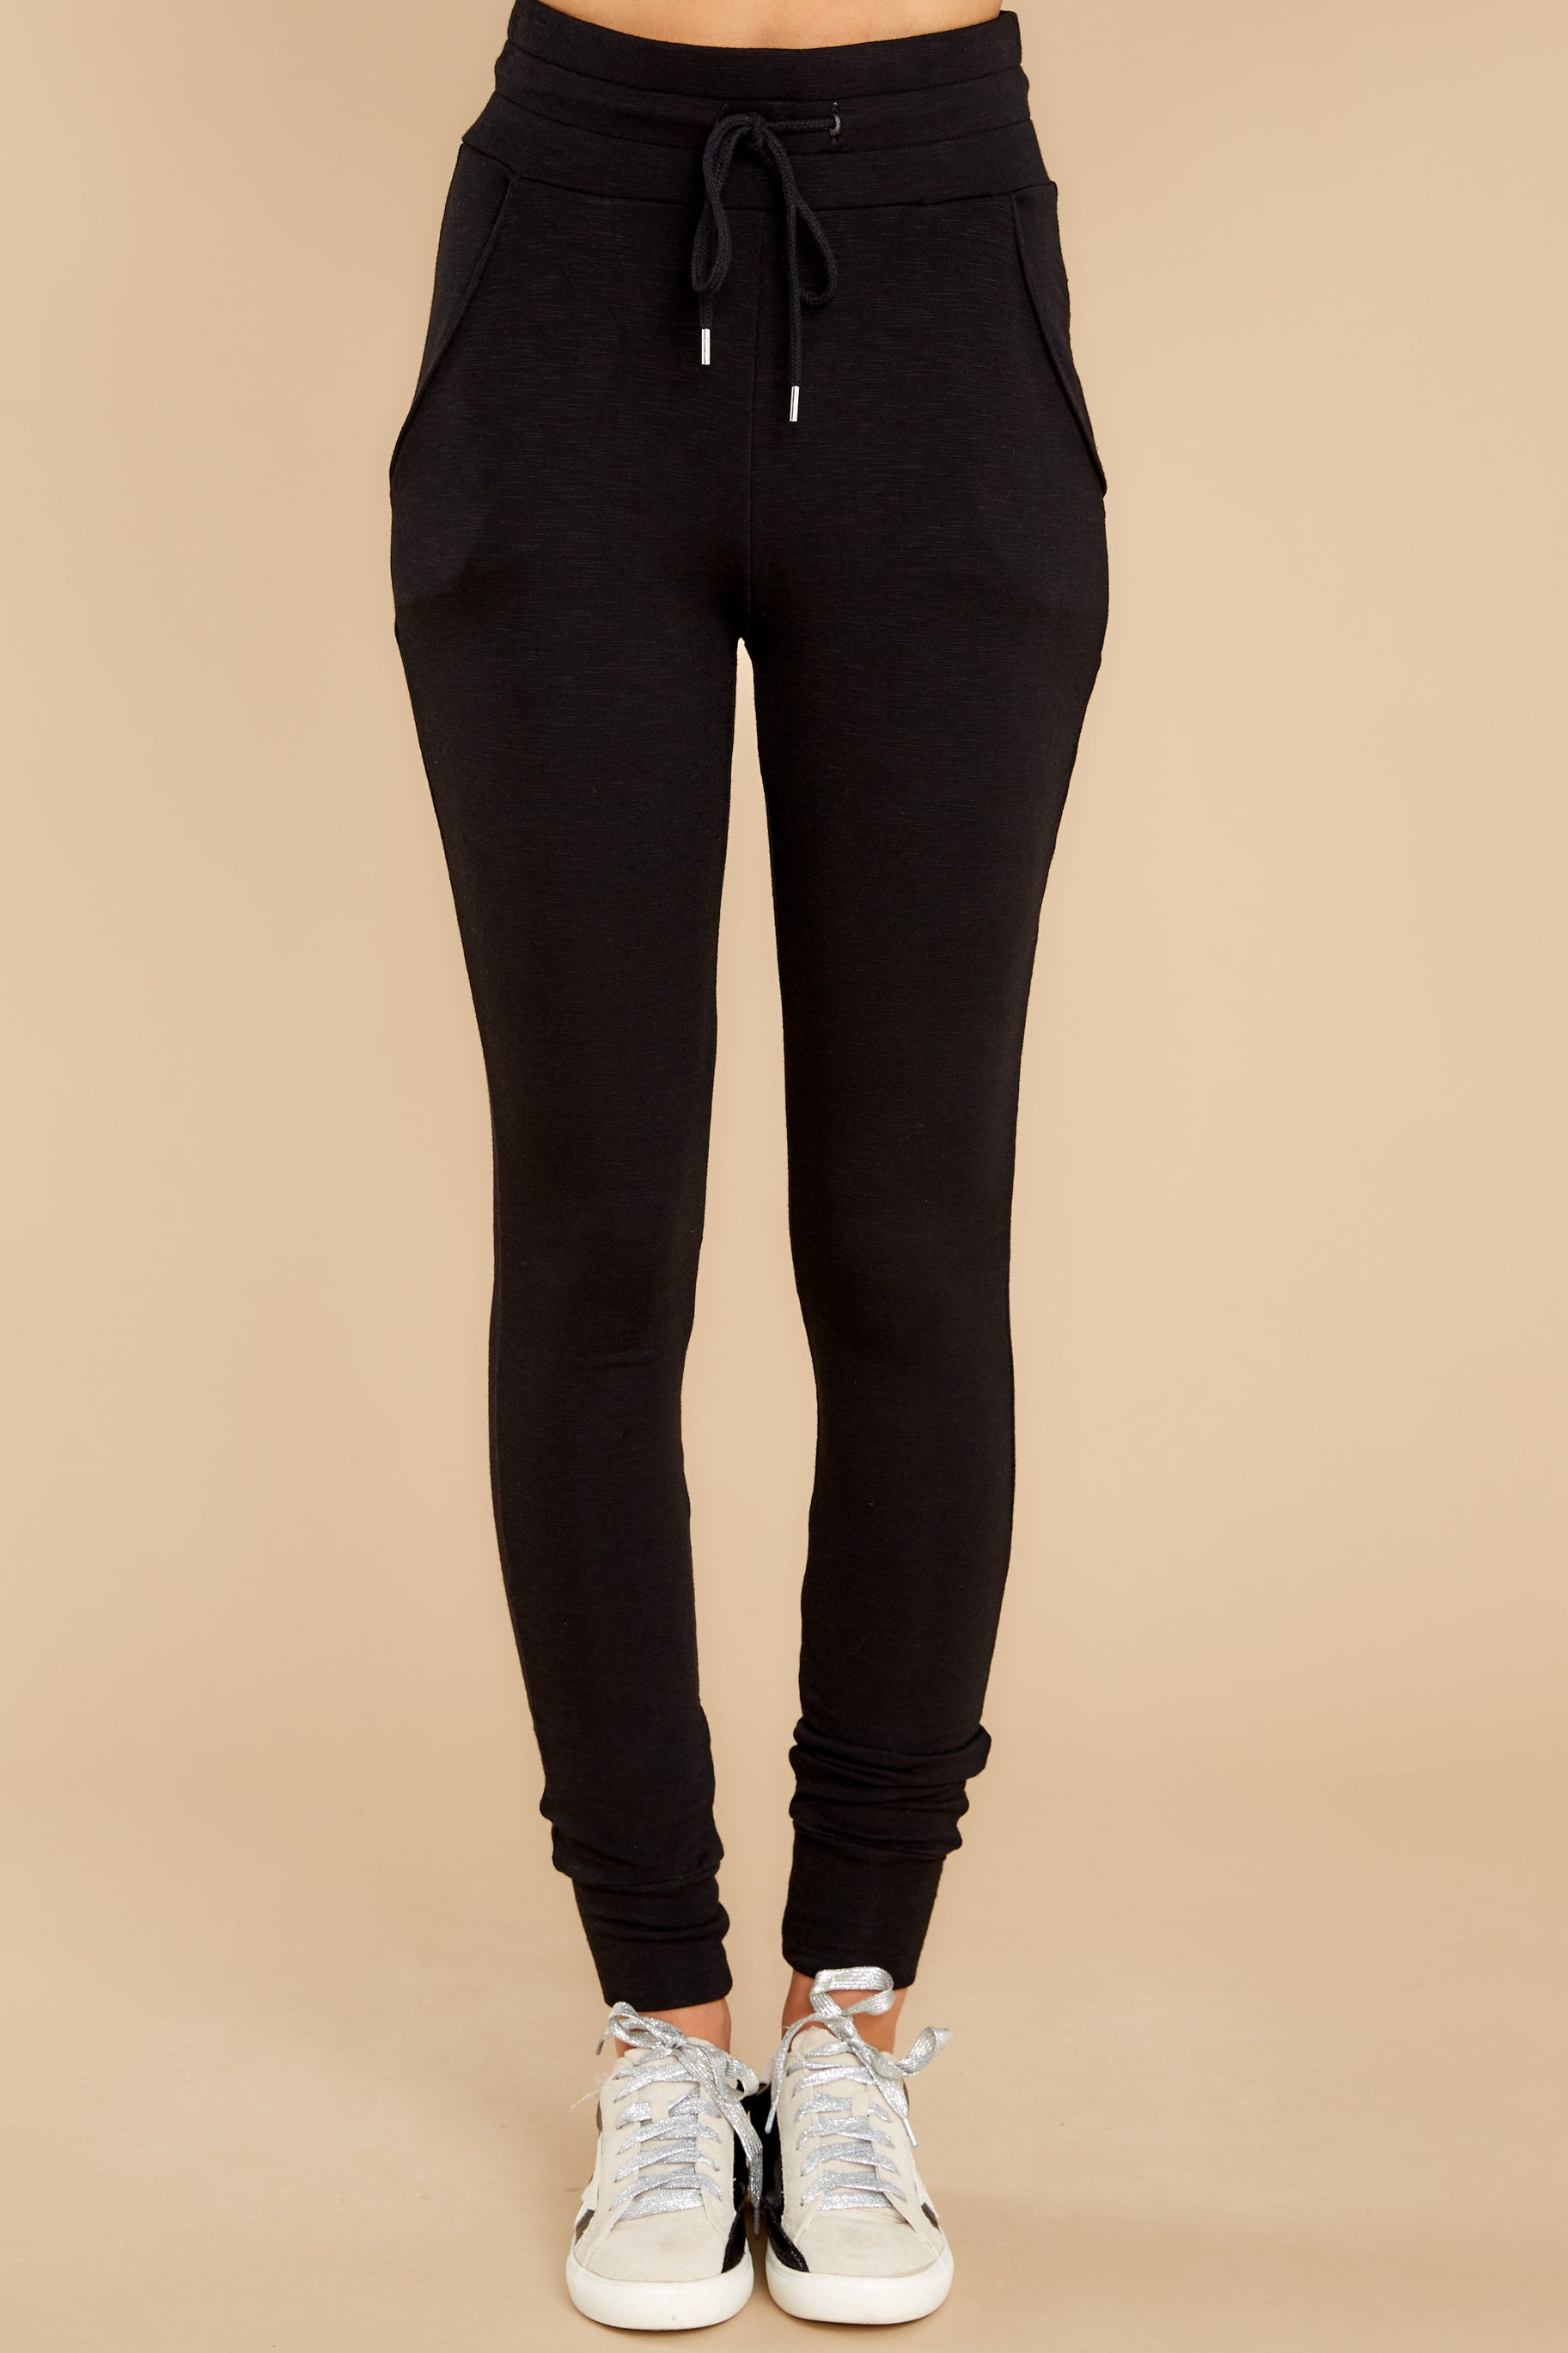 3 Cloud Chaser Black Joggers at reddress.com